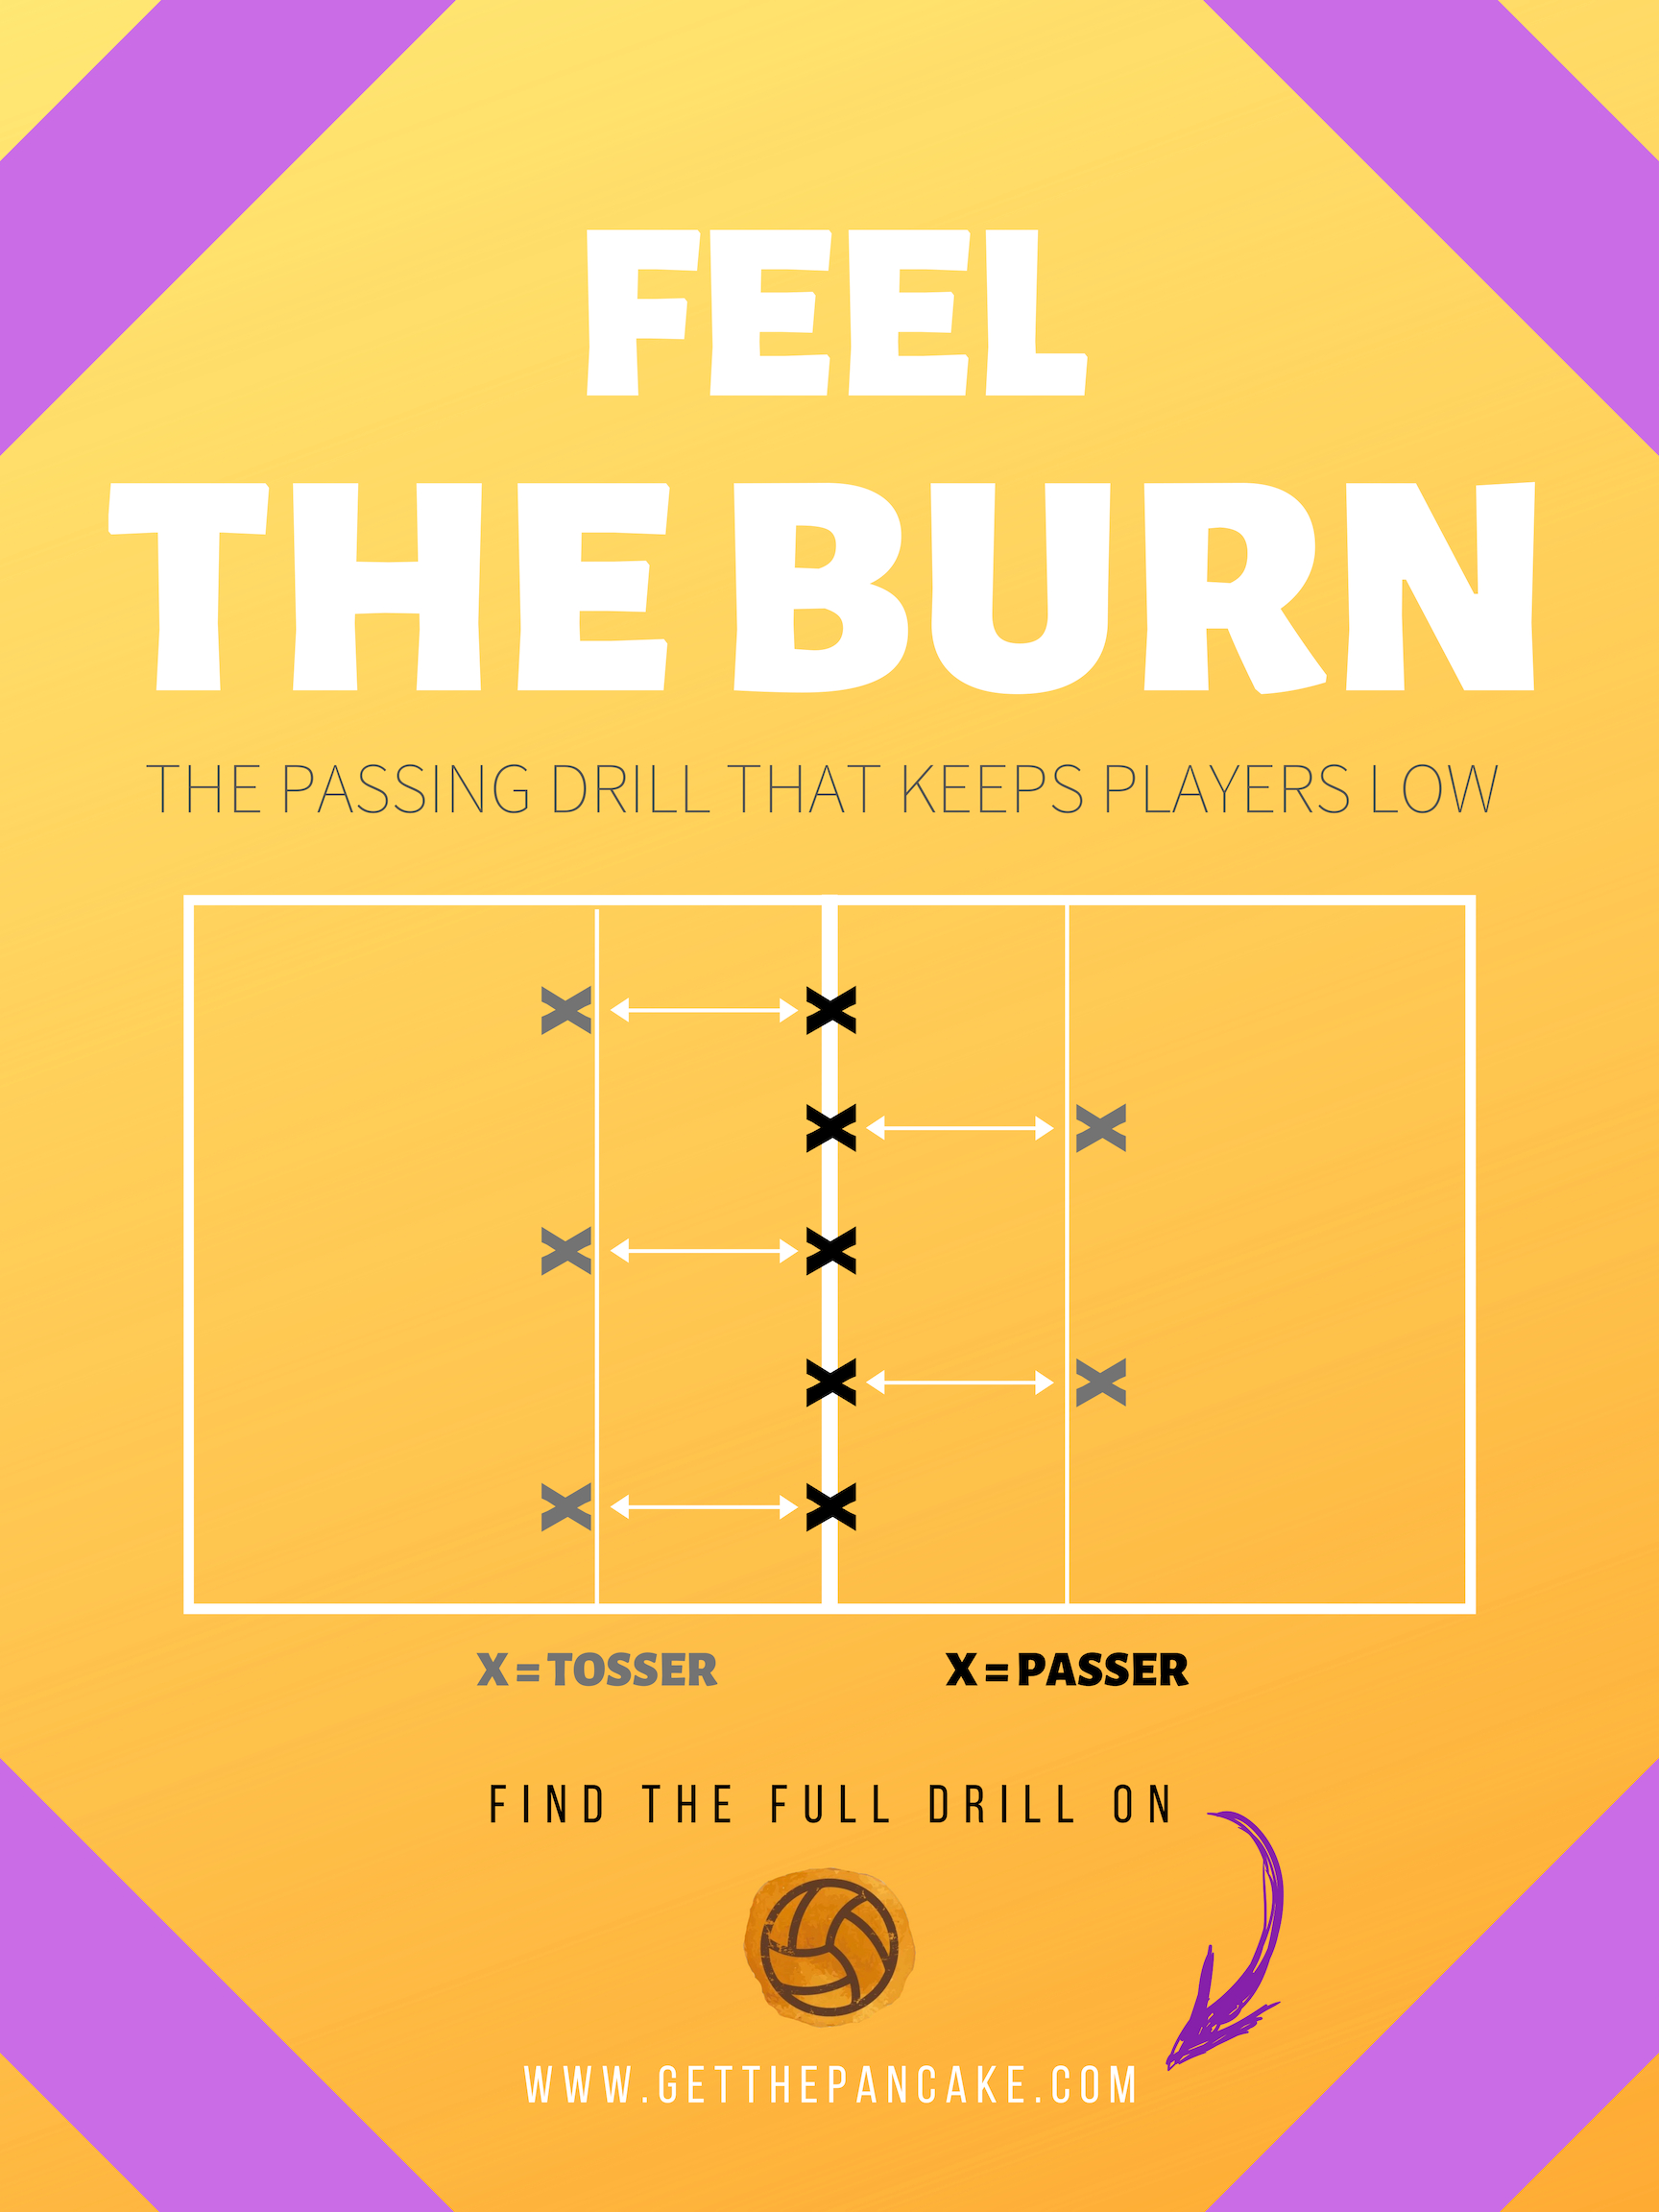 Feel The Burn Easy Volleyball Passing Drill.jpg